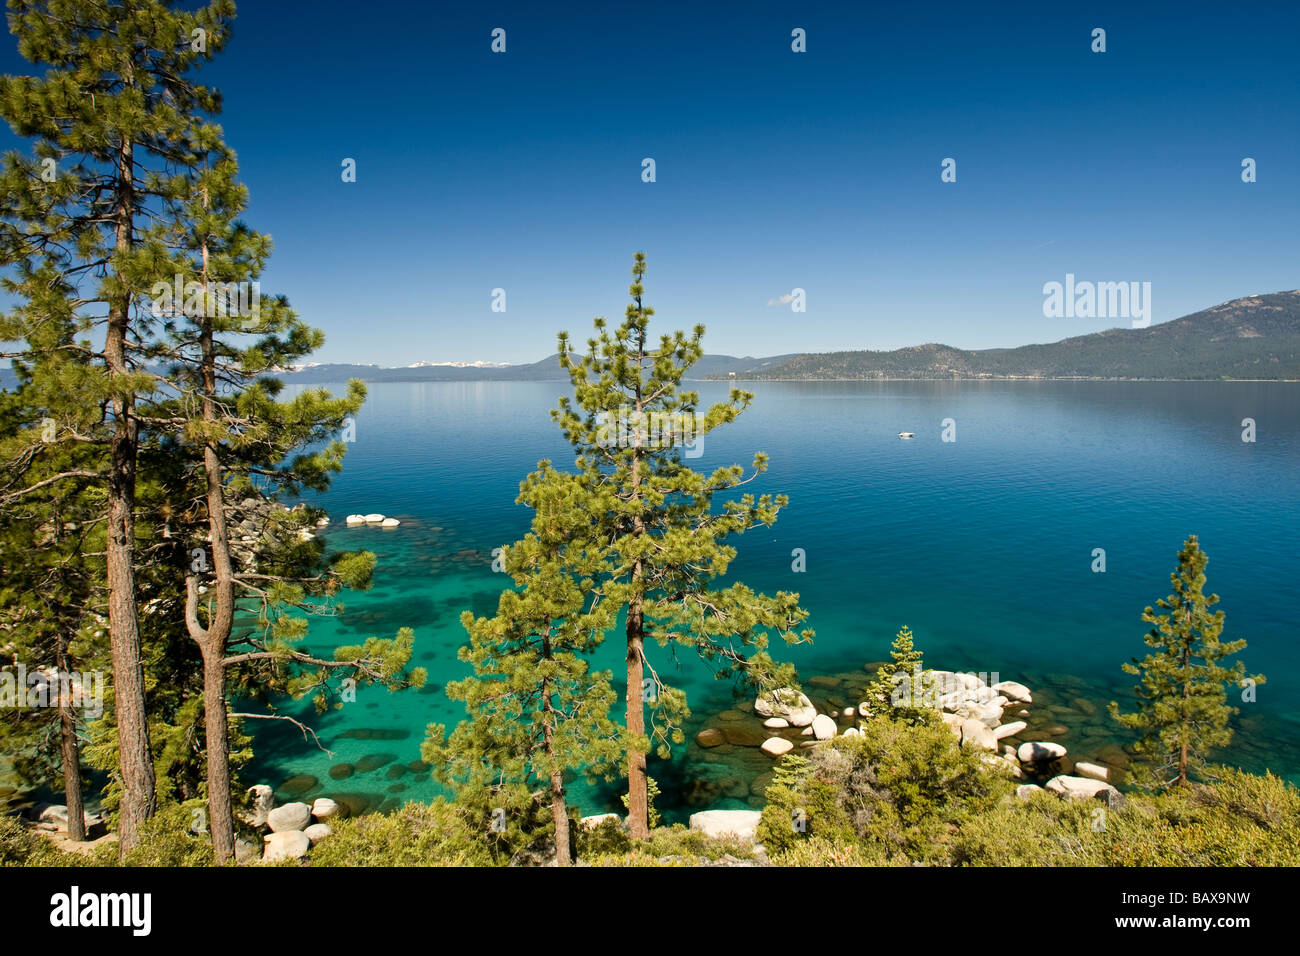 Clear blue waters of Lake Tahoe, California. - Stock Image